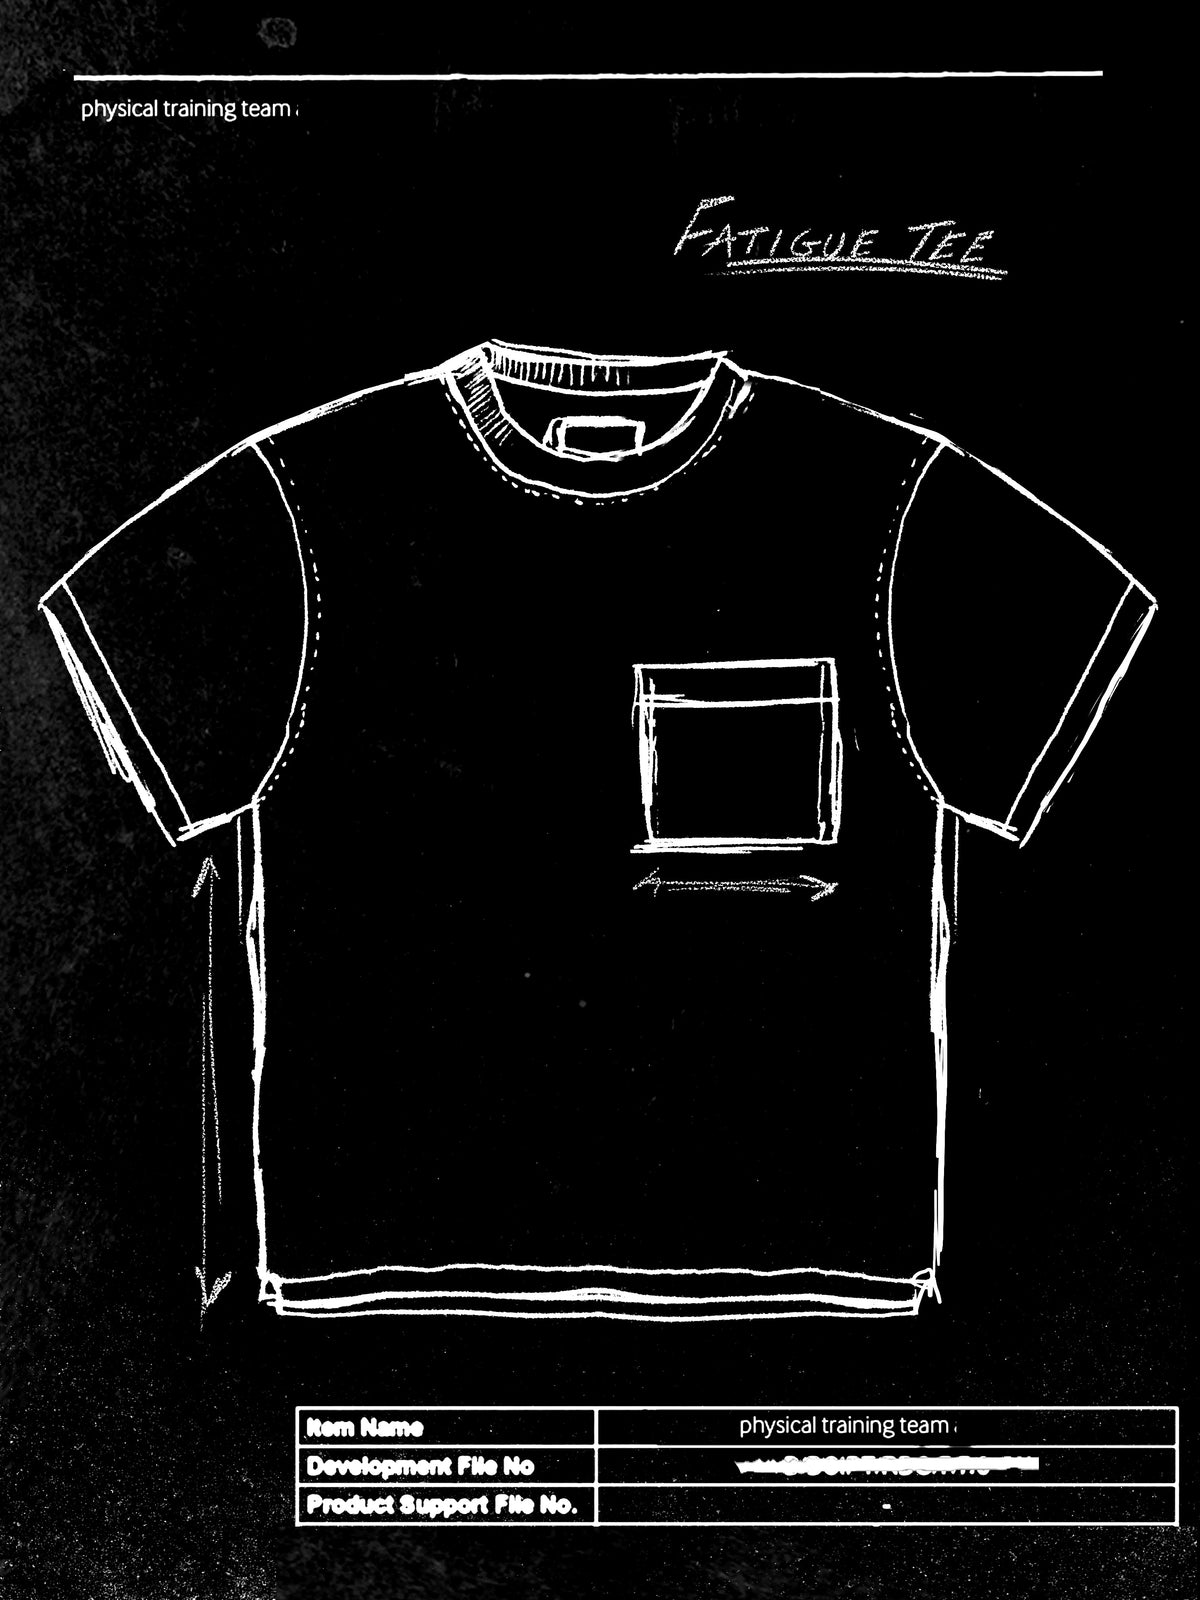 field-notes-military-pt-tee-realm-empire-construction-details